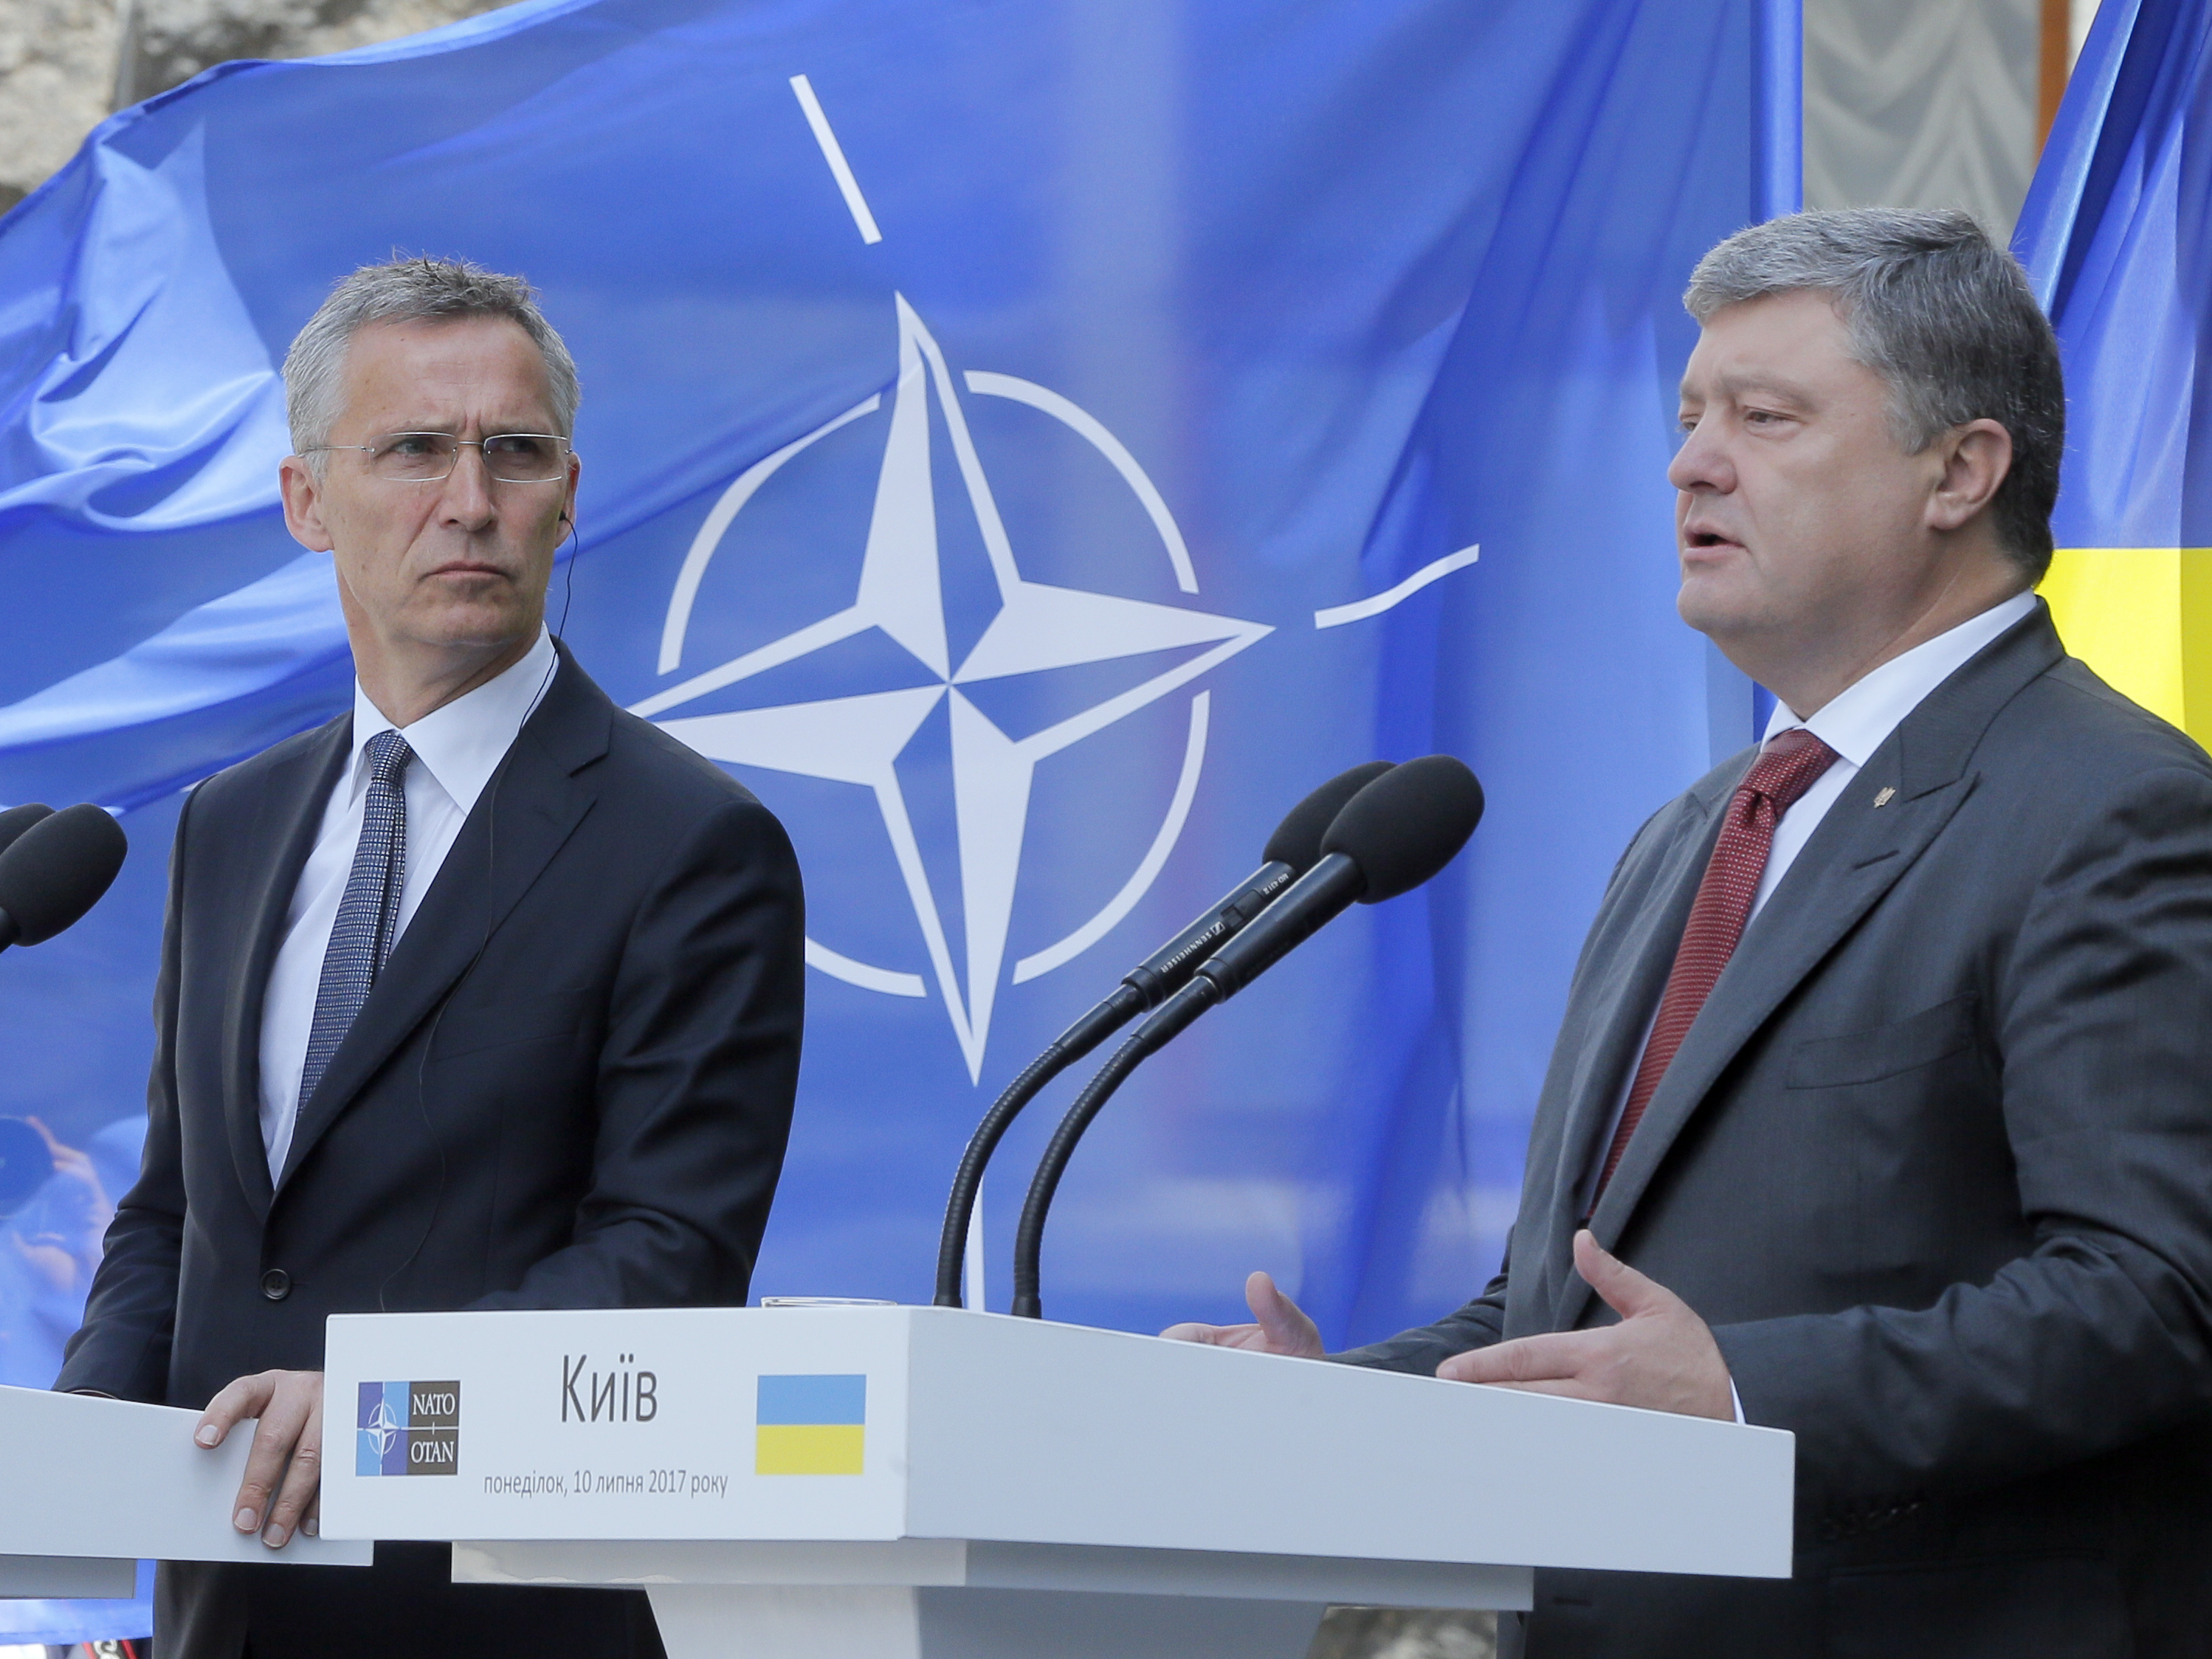 a discussion of the objections to and advantages of nato membership The future of nato and enlargement  candidate countries for nato membership  that stresses the comparative advantages of the militaries.